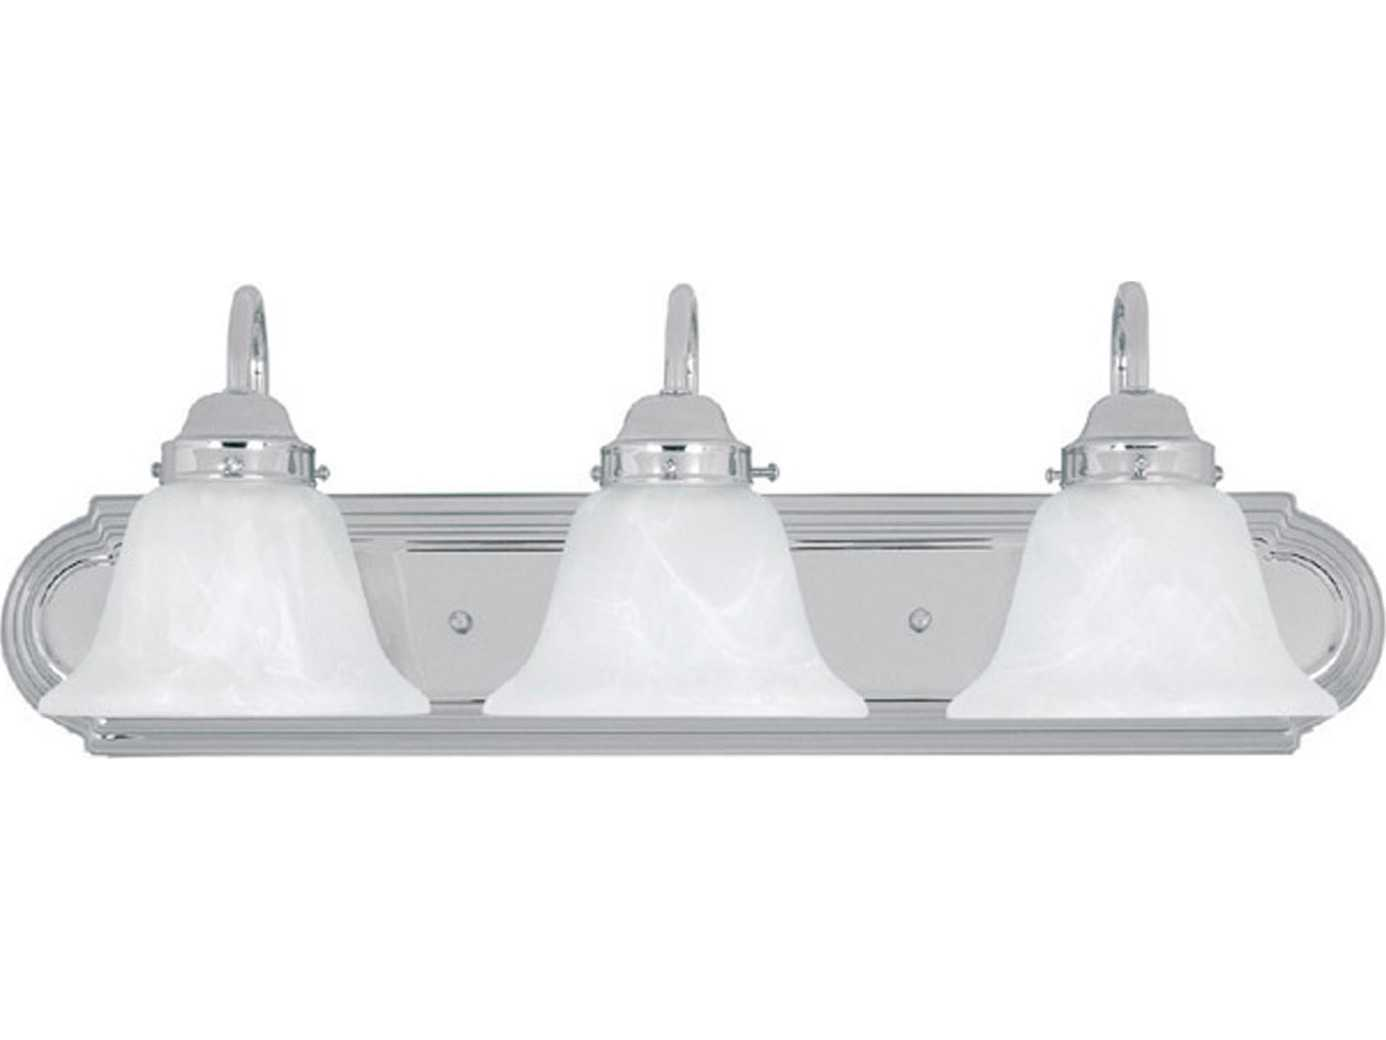 Vanity Lights Cyber Monday : Capital Lighting Chrome Three-Light Vanity Light C21033CH118